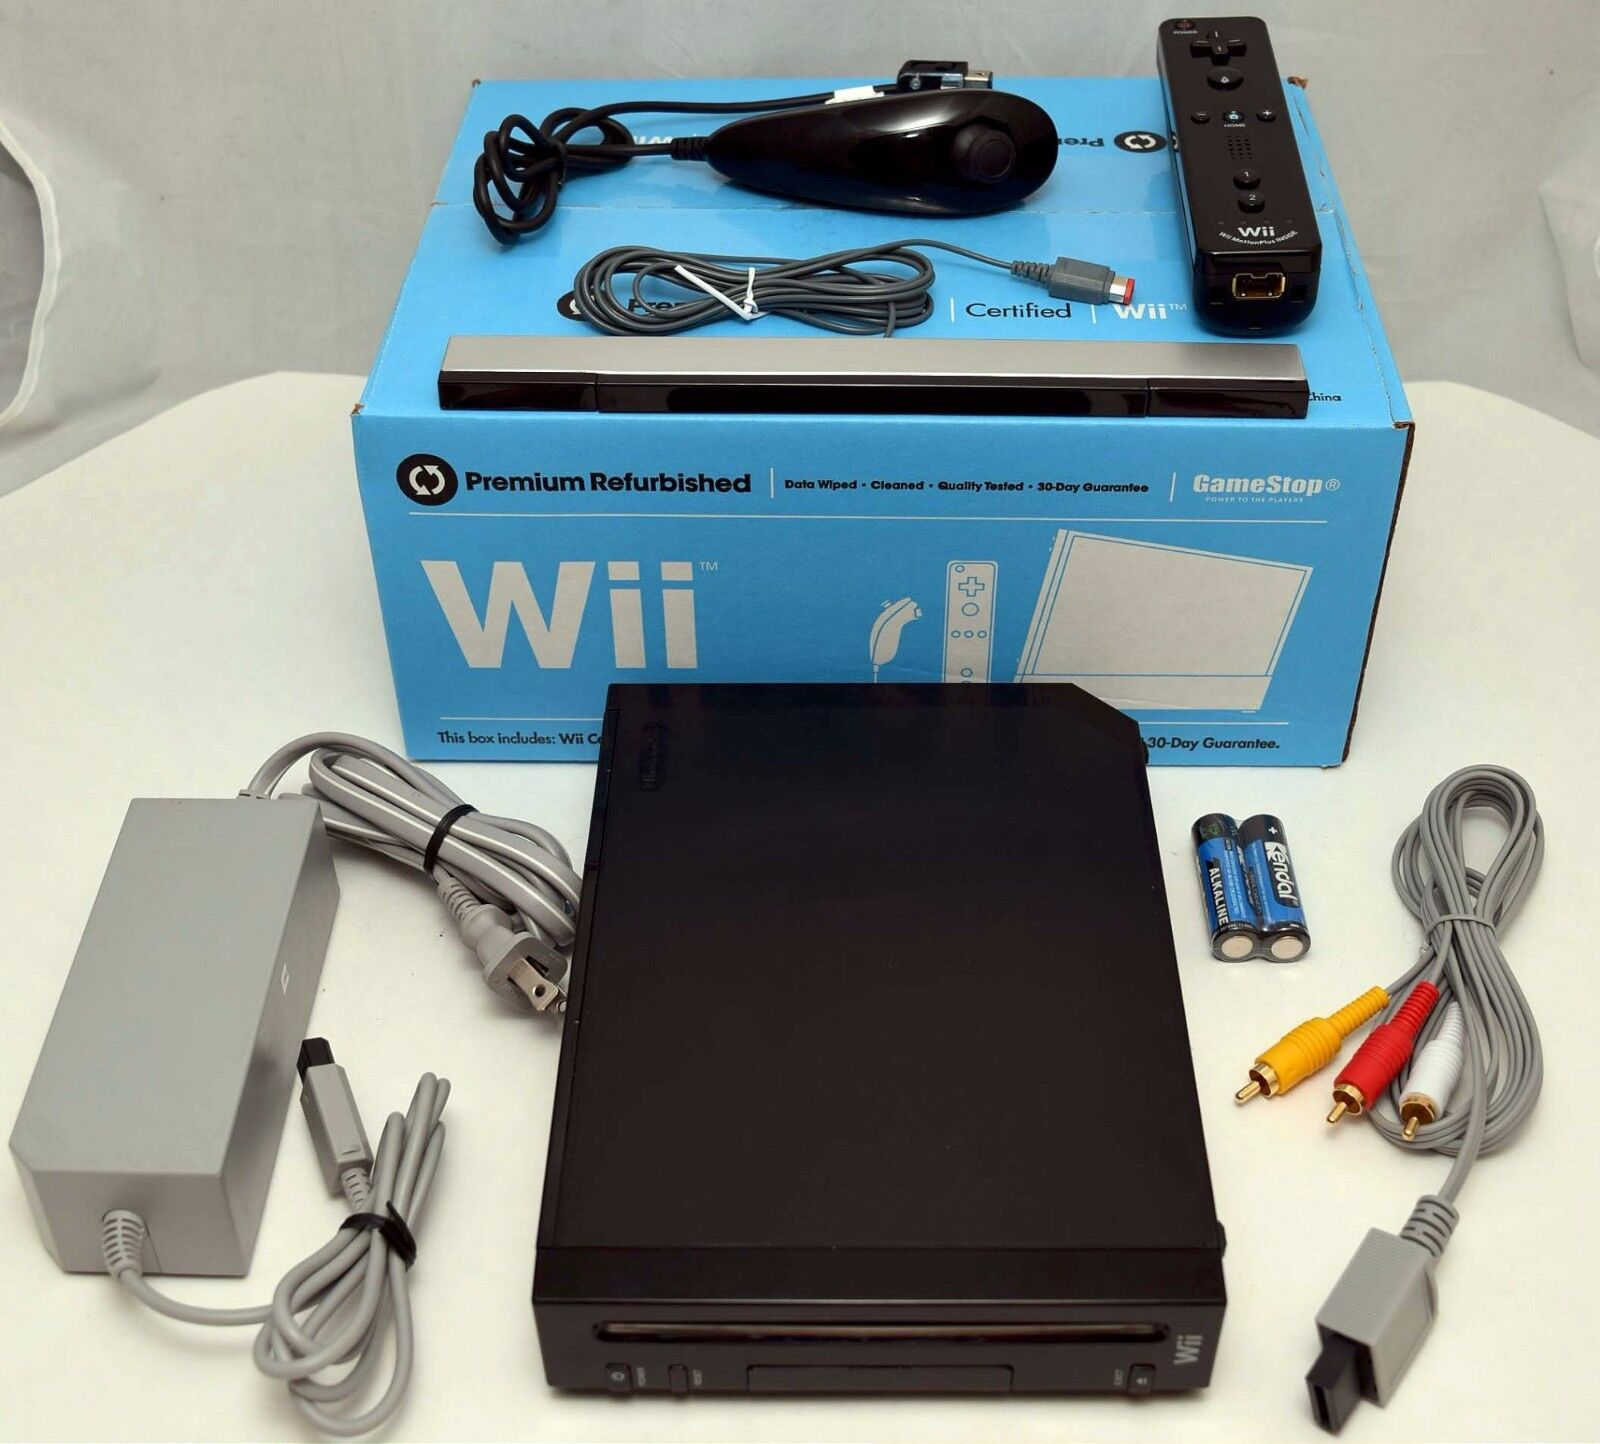 Nintendo Wii BLACK Home Gaming Console System Bundle RVL-101 video ...